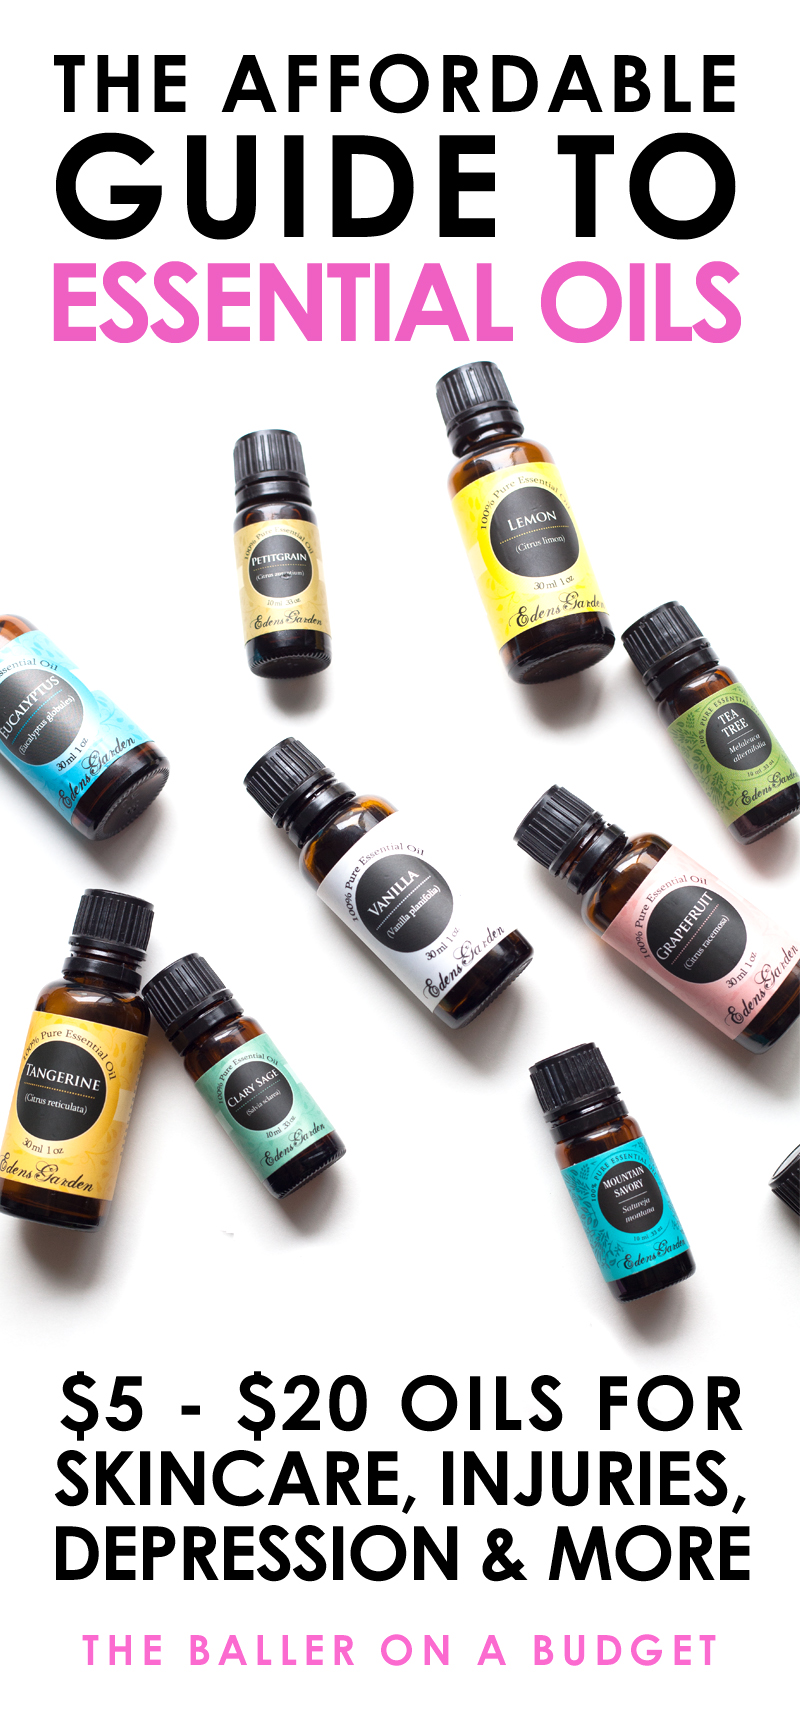 Many Edens Garden Essential Oils range from $5-$10, making them an affordable comparable to Young Living Oils. Read more to see the many uses of these beneficial oils! - www.theballeronabudget.com